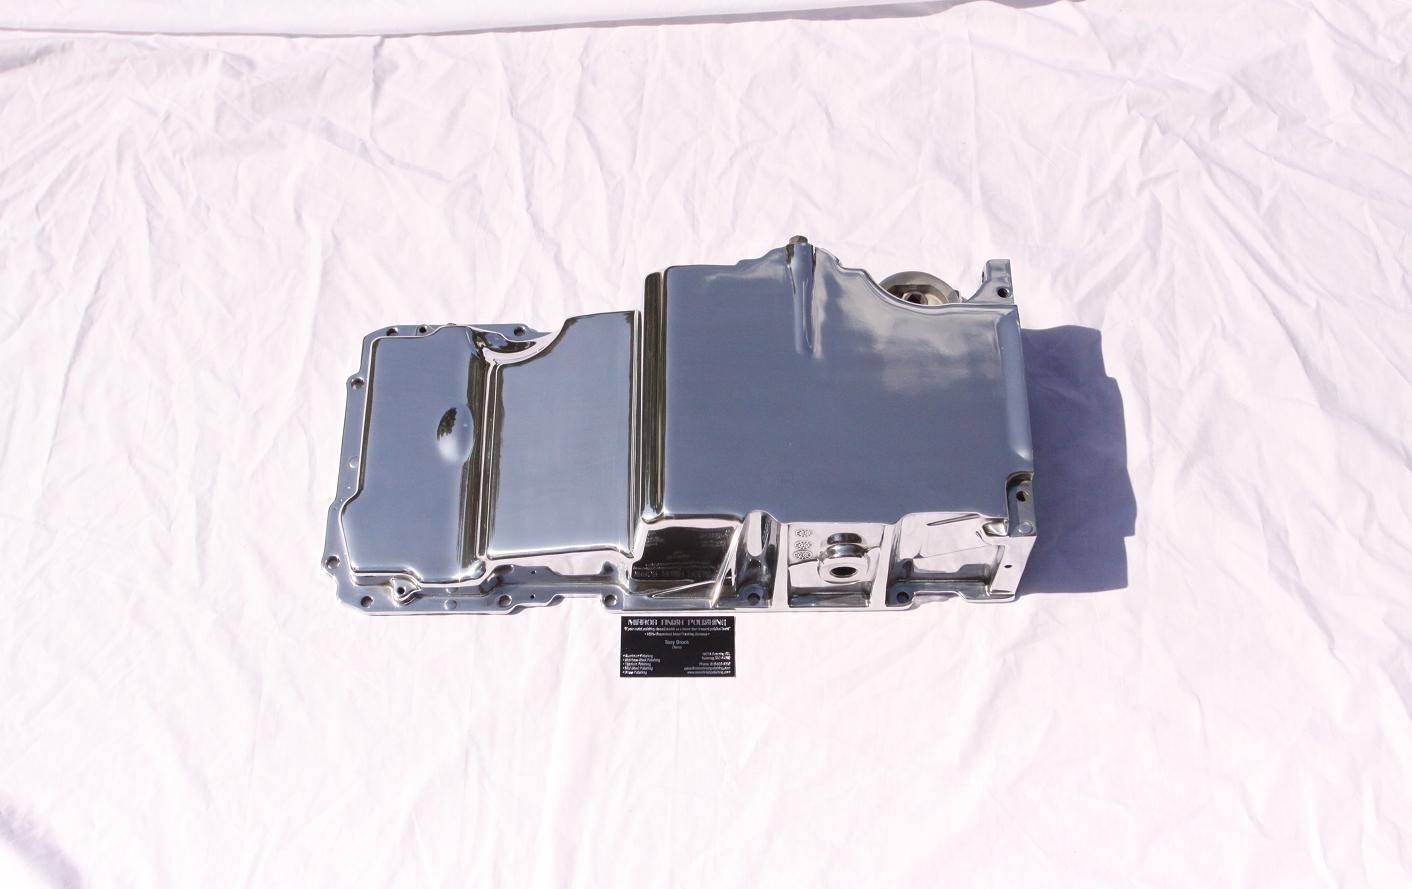 Chevy LS1 V8 5.7L Camaro Aluminum Oil Pan AFTER Chrome-Like Metal Polishing and Buffing Services